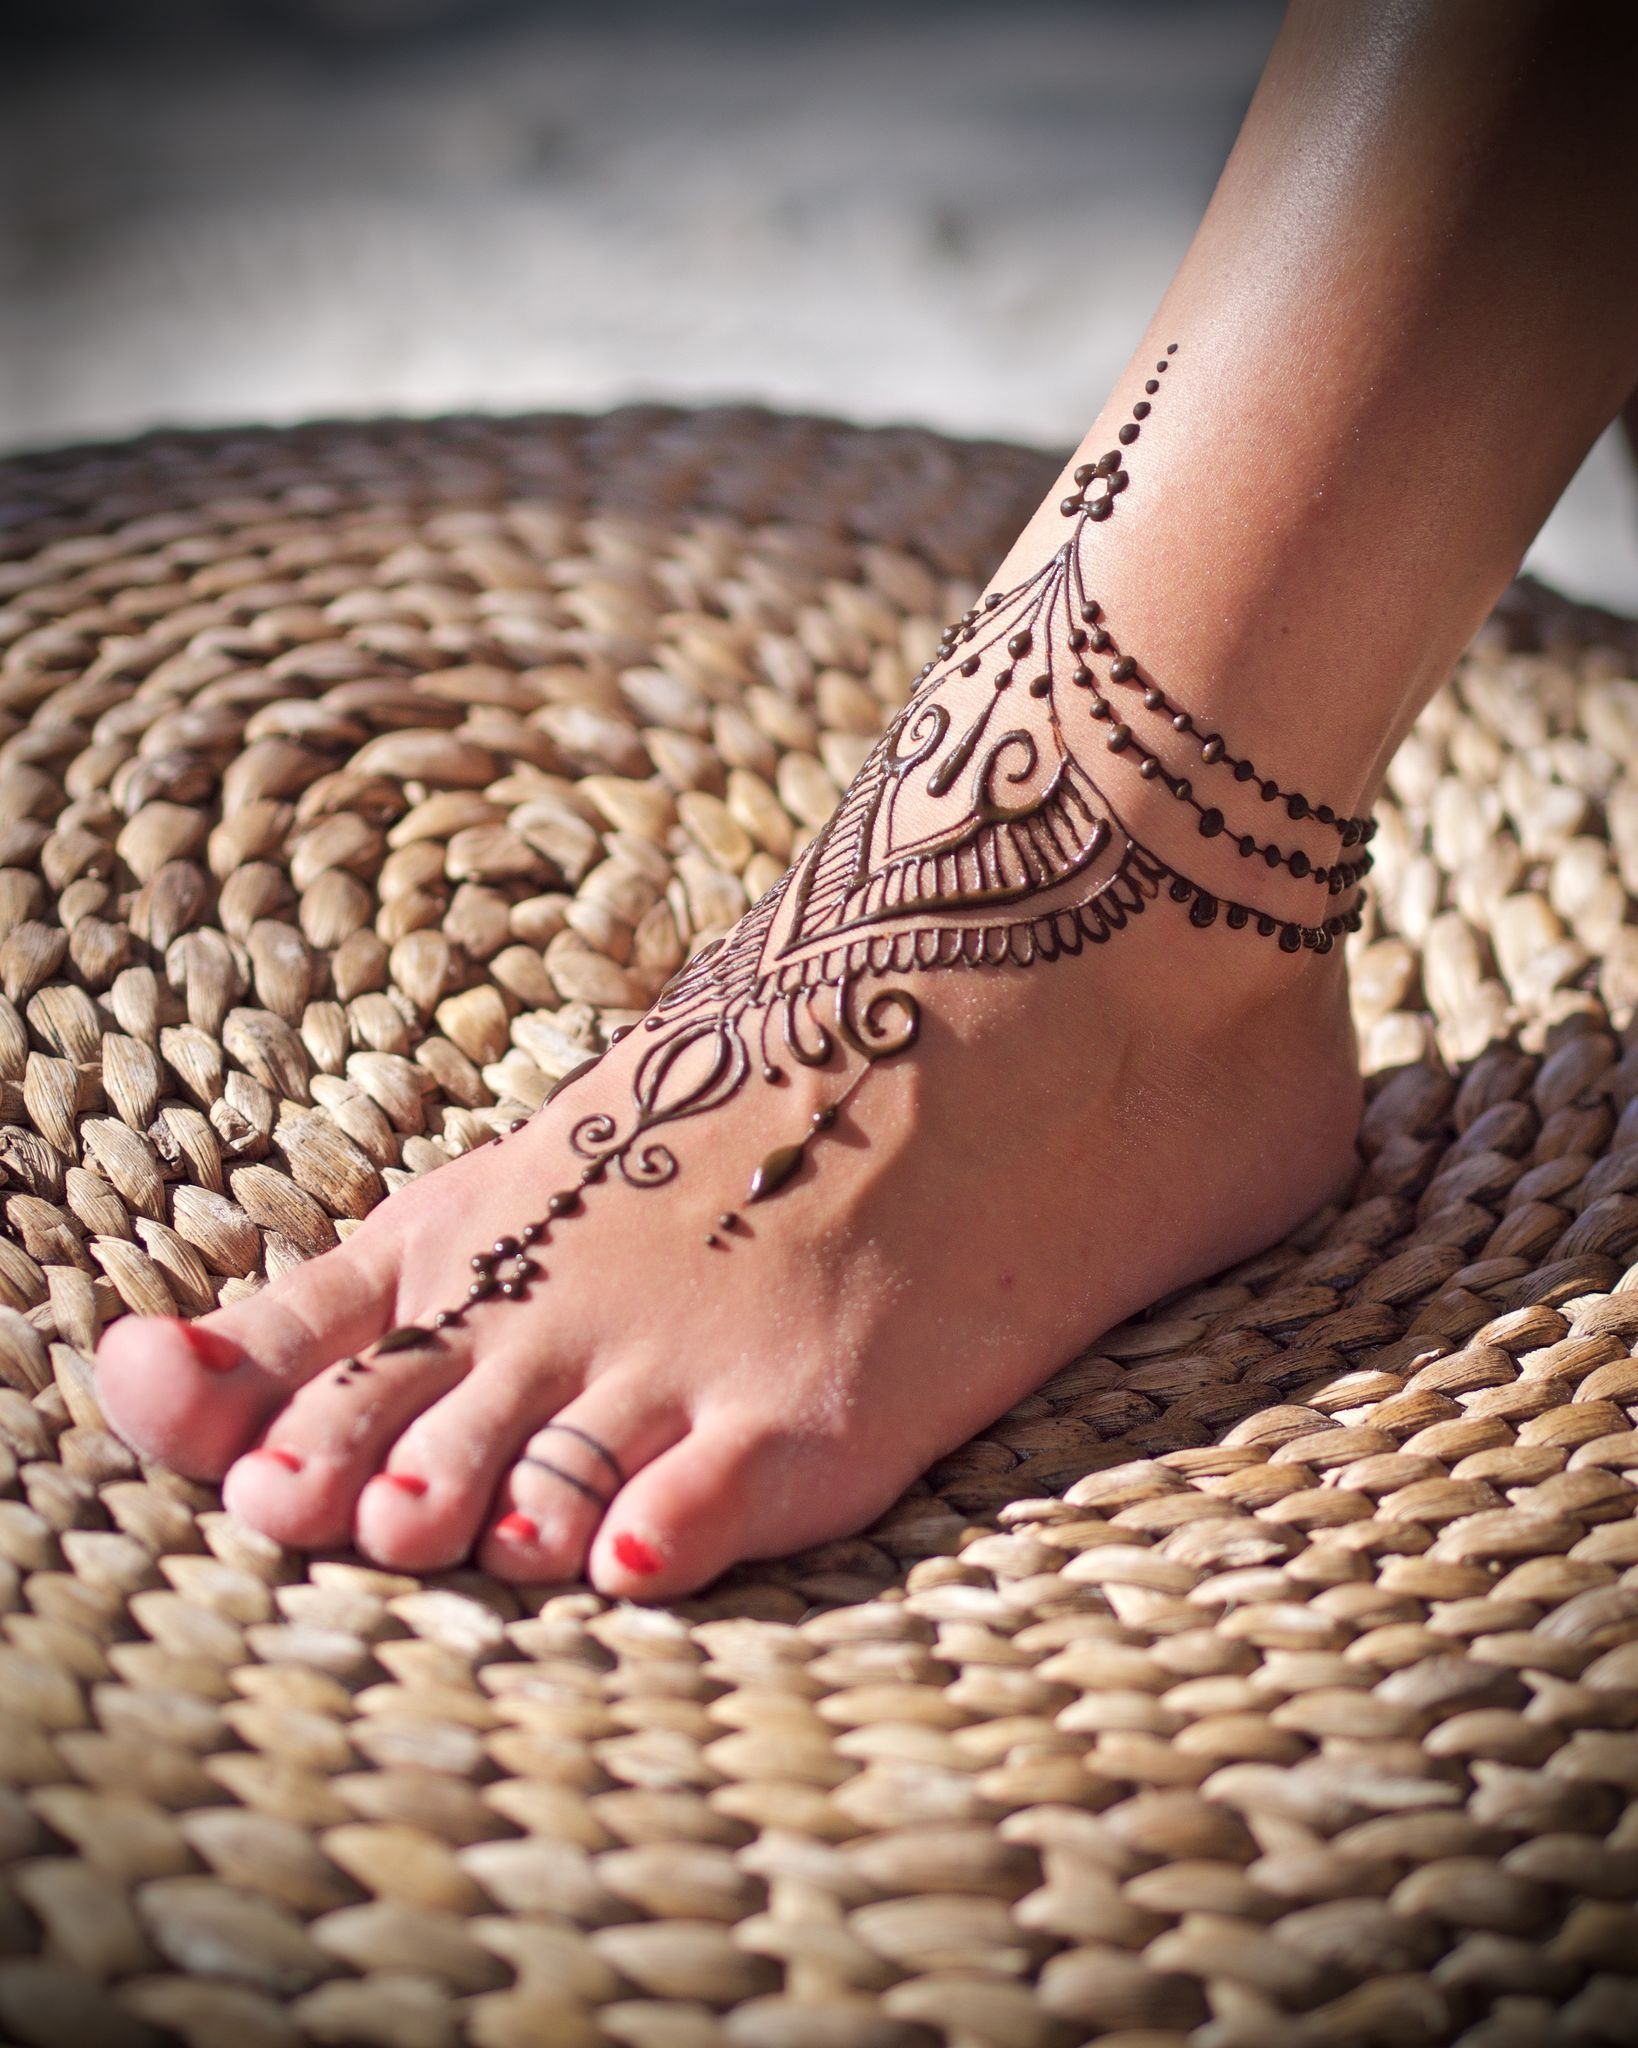 Thai Foot Tattoos Henna Foot Henna Henna Tattoo Designs pertaining to dimensions 1638 X 2048